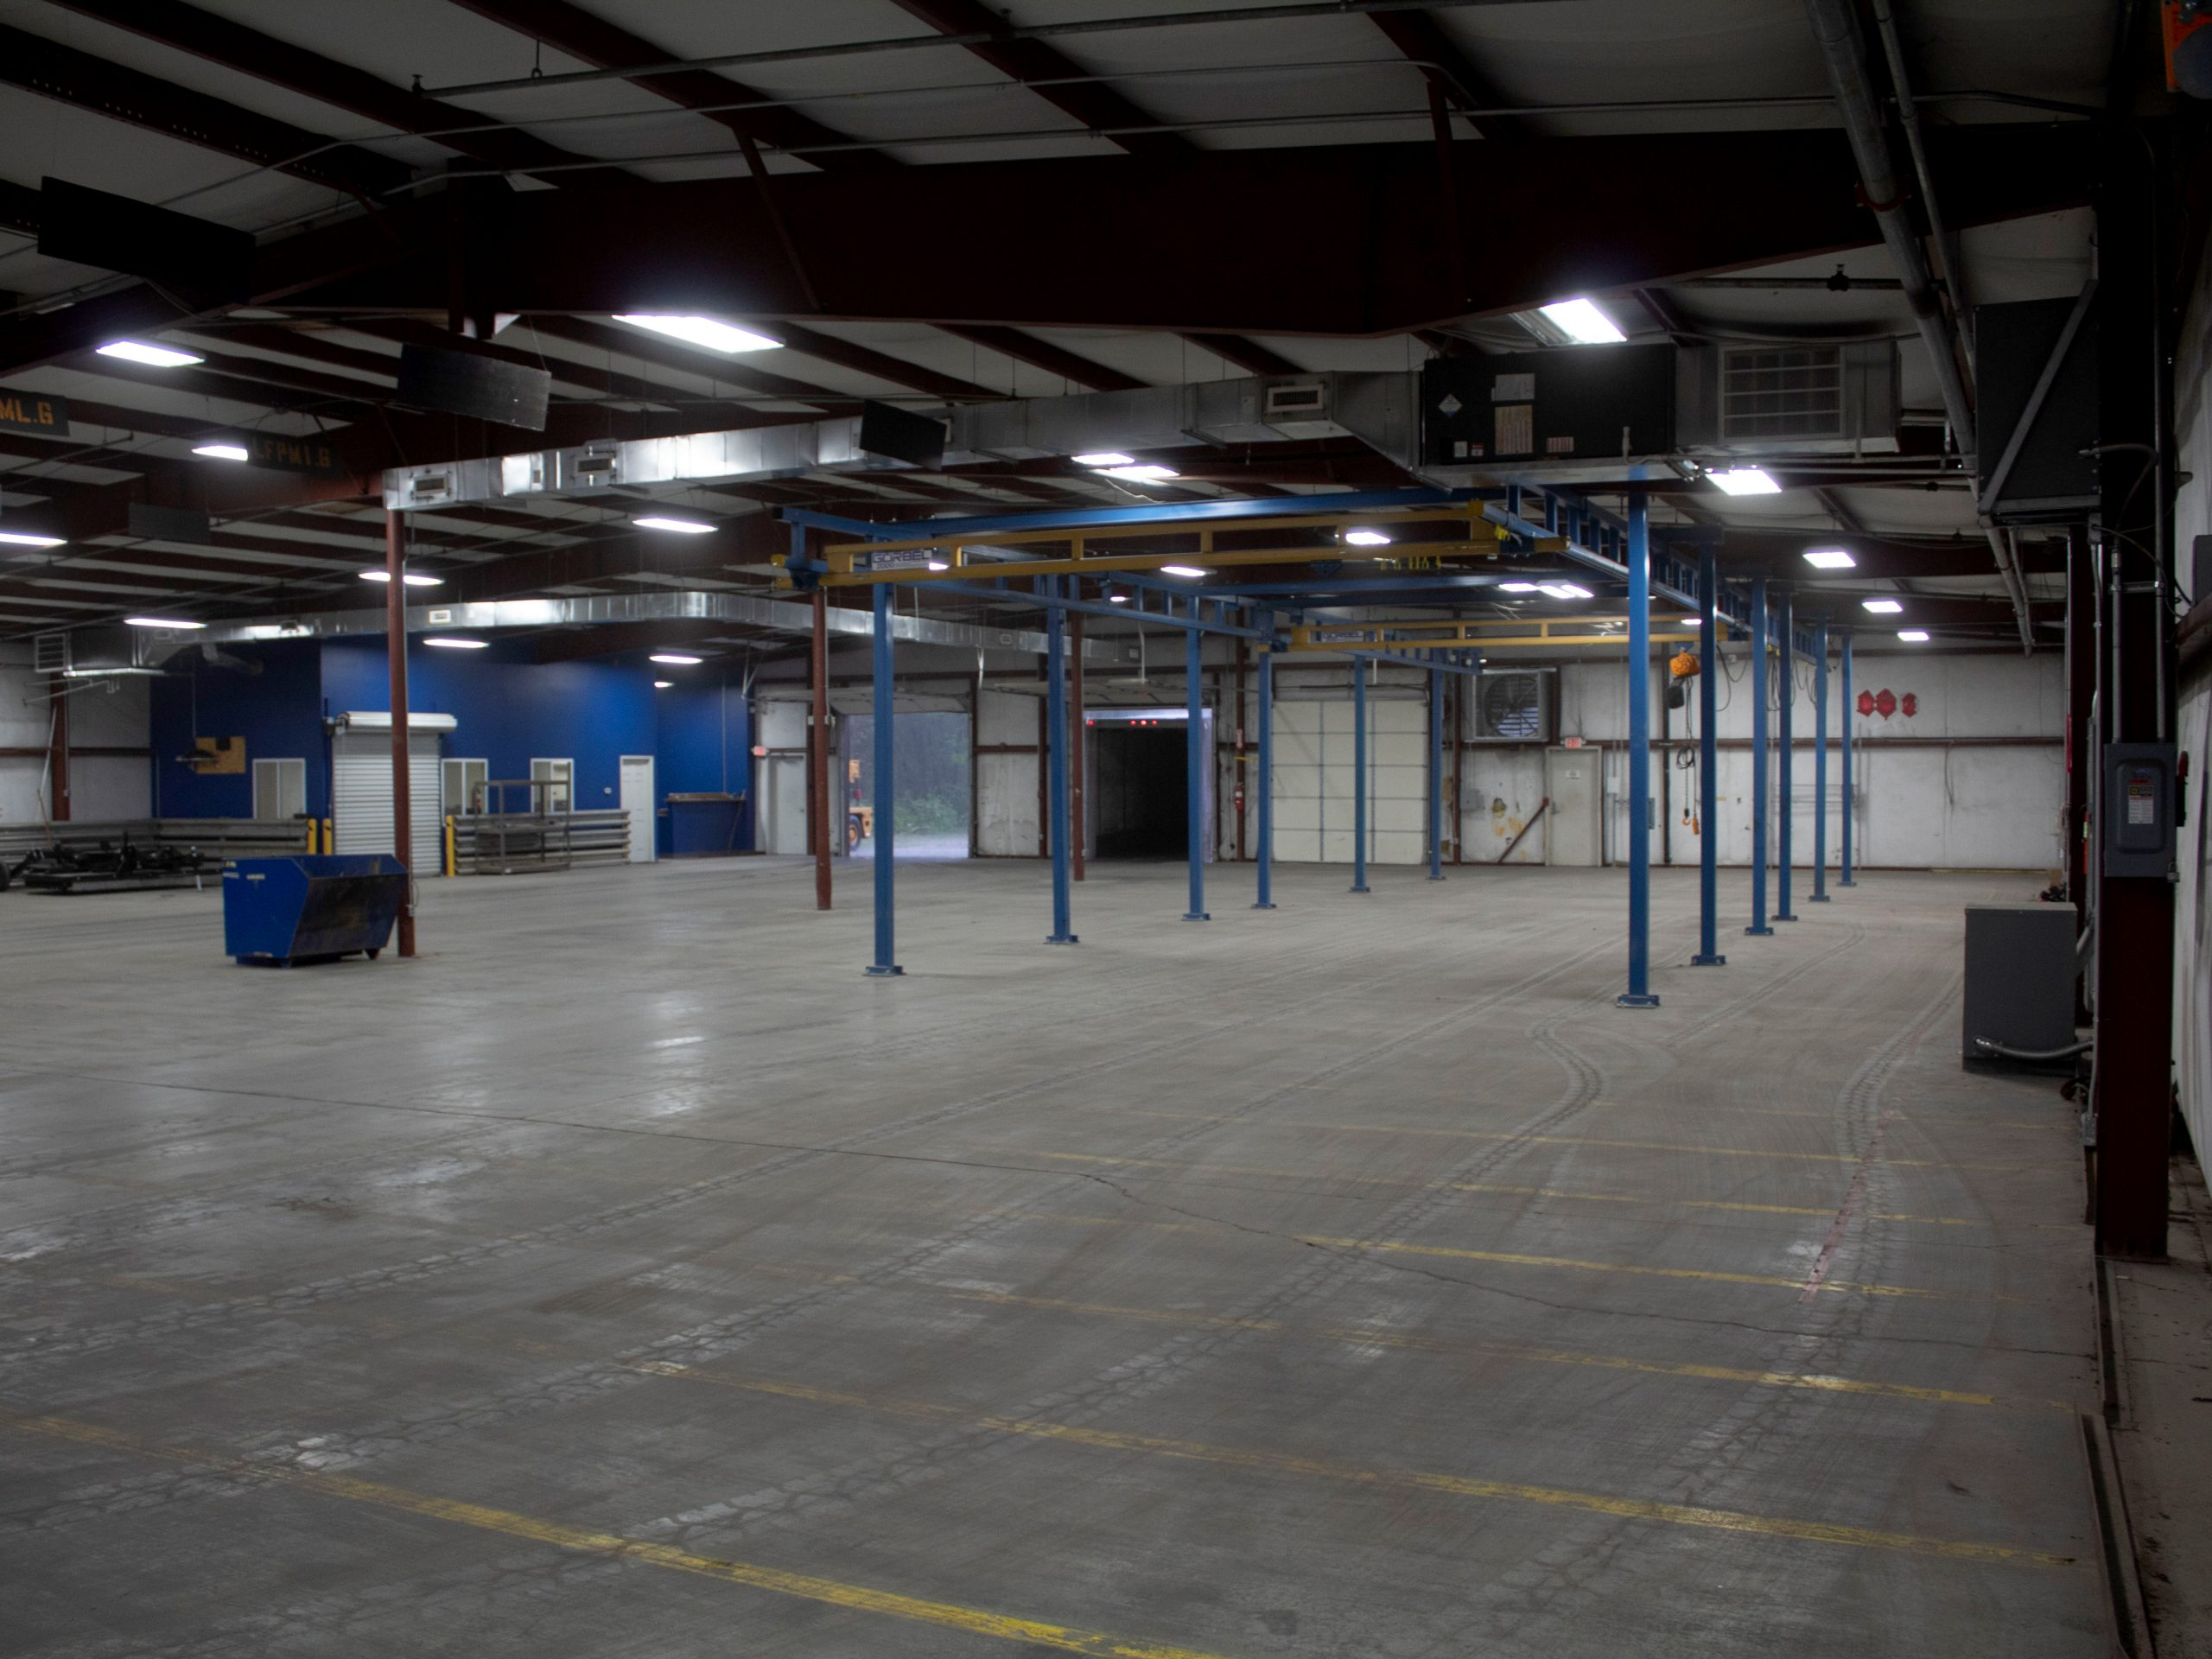 Warehouse - Commercial real estate for sale in Knoxville.